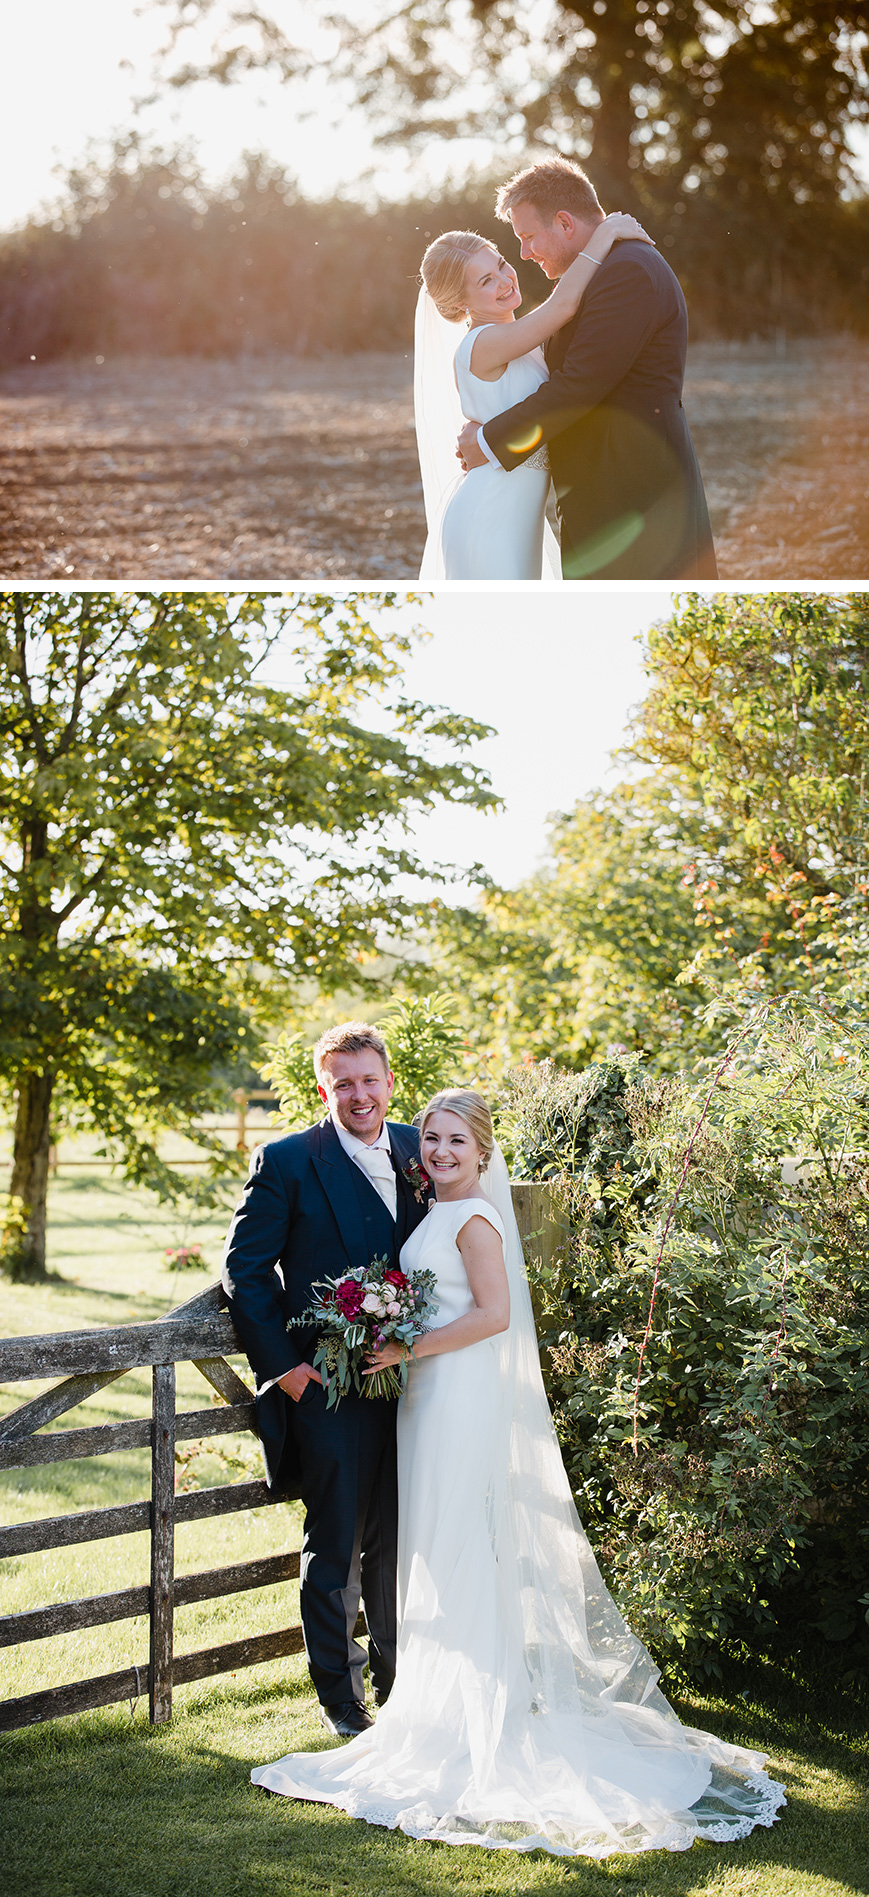 Real Wedding - Katherine and Matthew's Sun-soaked Summer Wedding at Blackwell Grange | CHWV